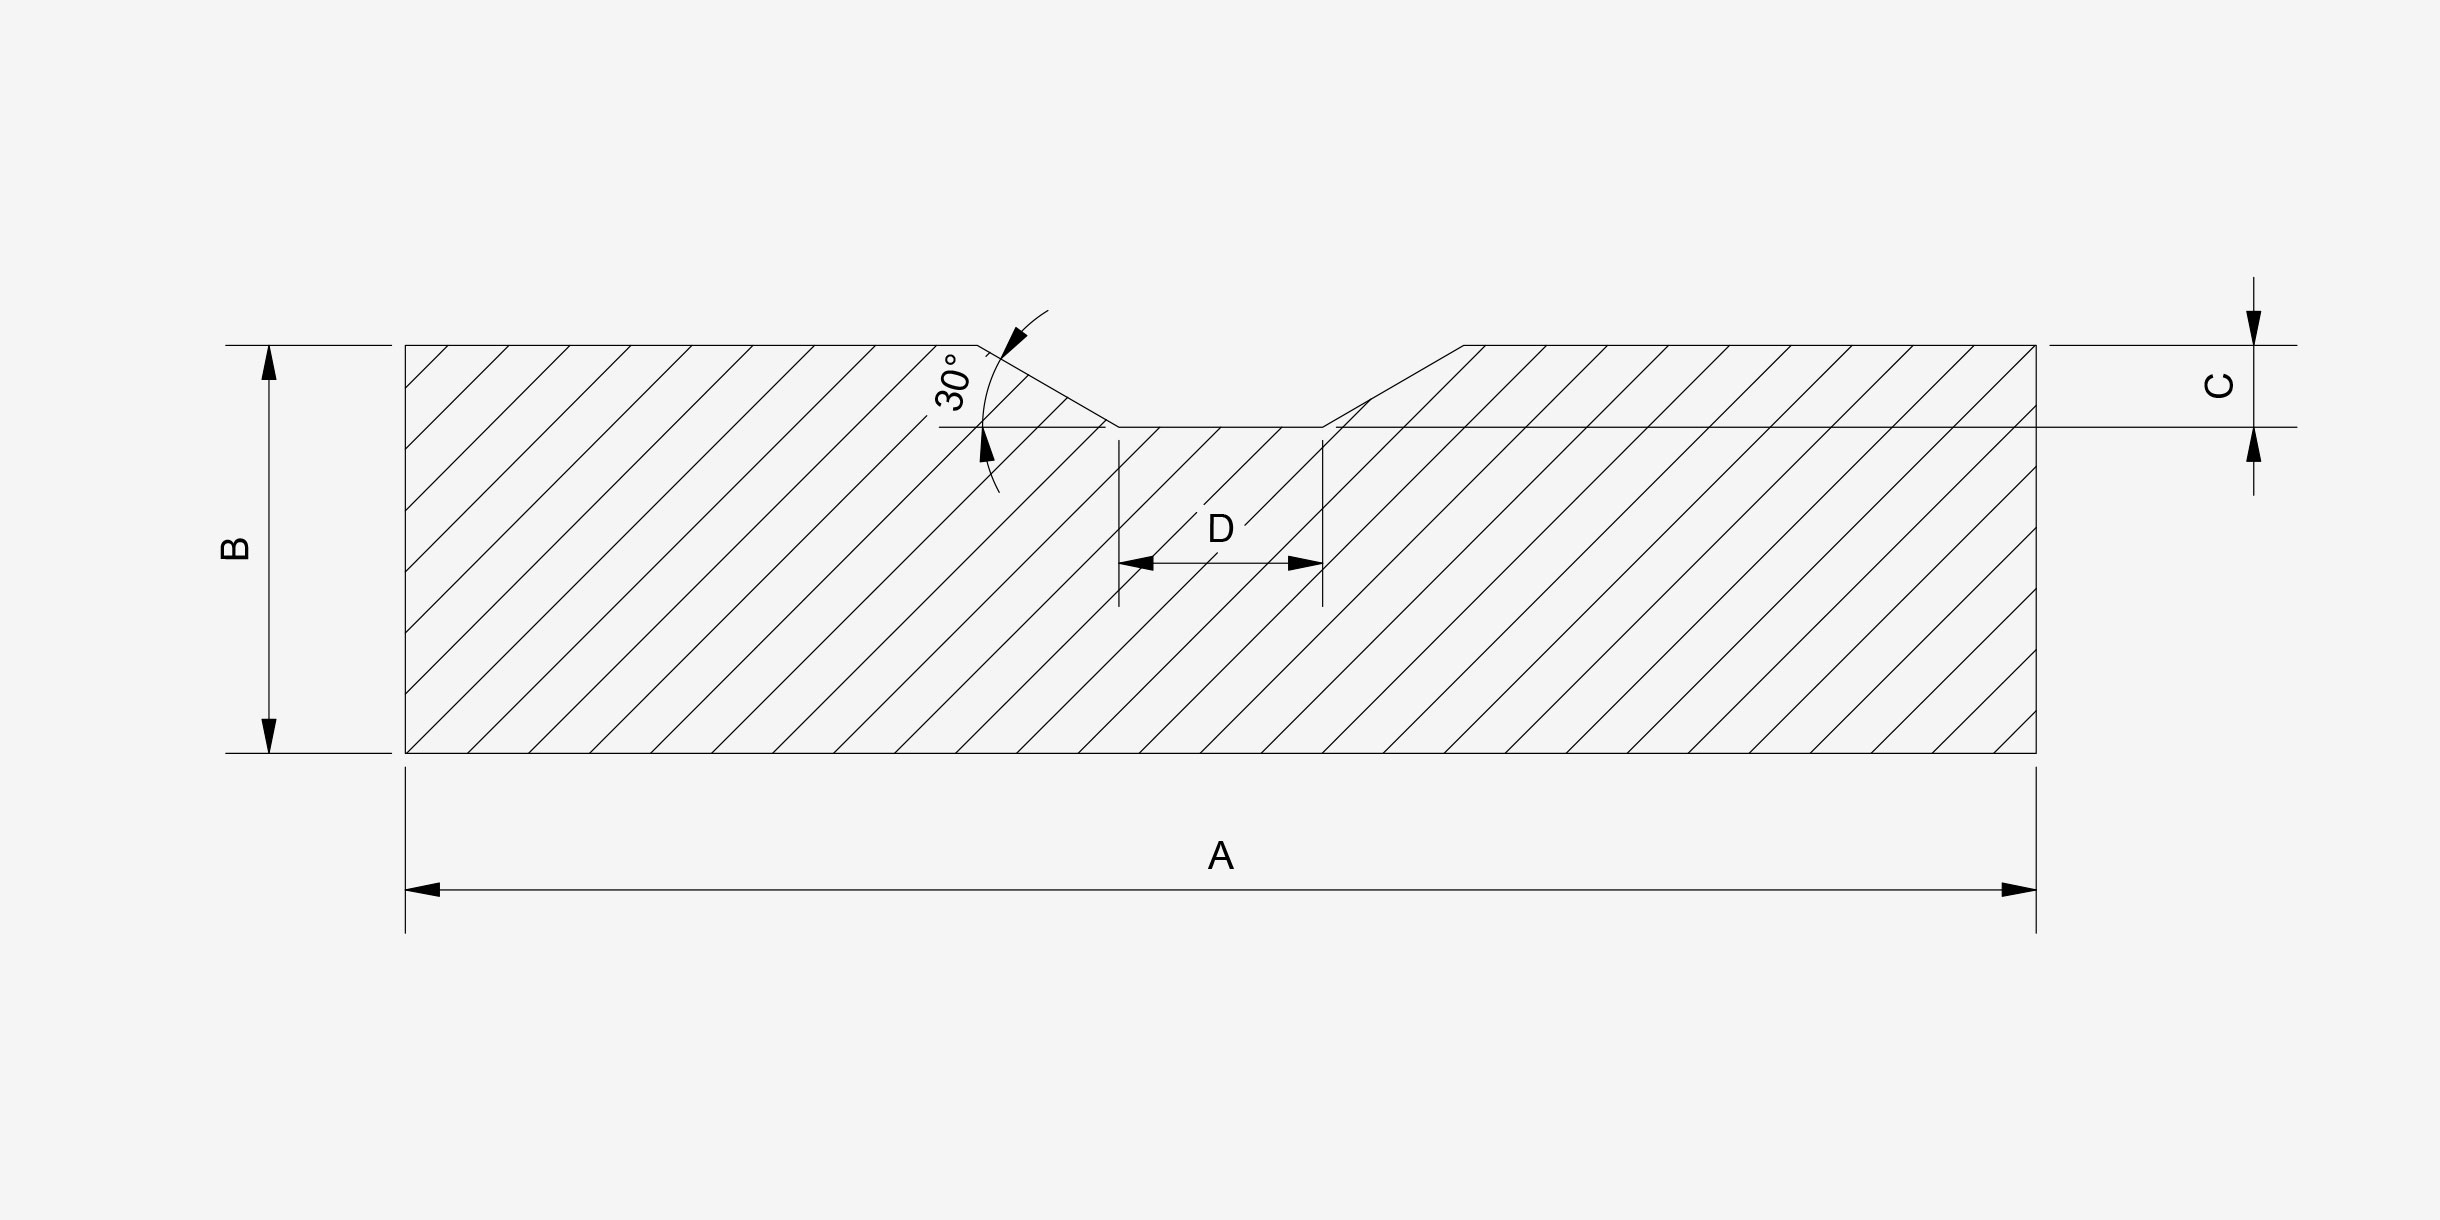 Grooved manganese wear - drawing